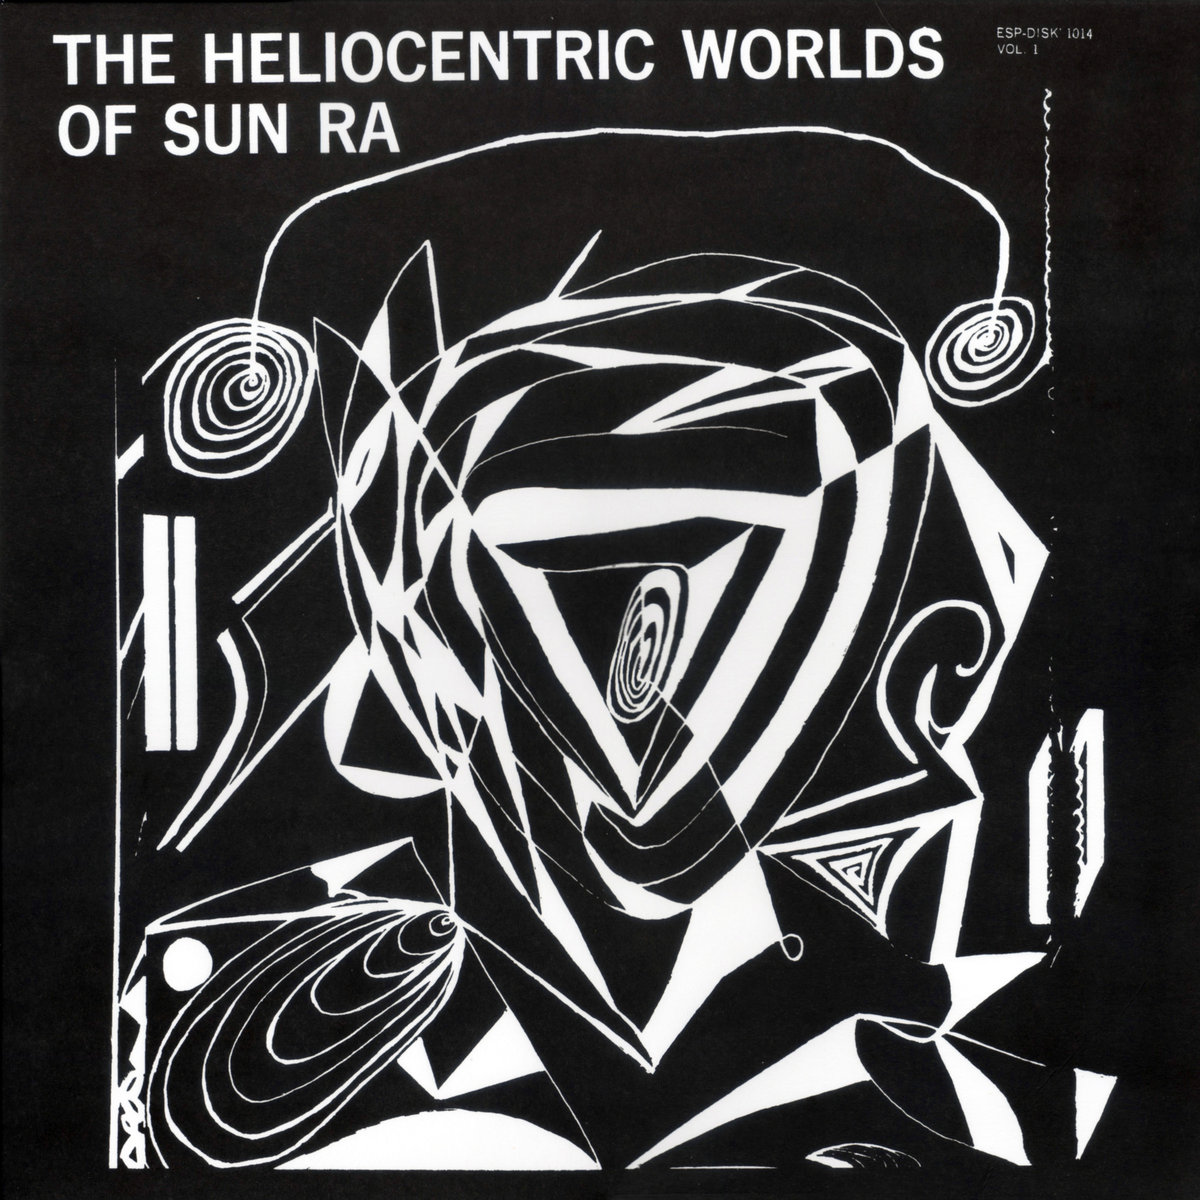 THE HELIOCENTRIC WORLDS OF SUN RA VOL.1 (LP)